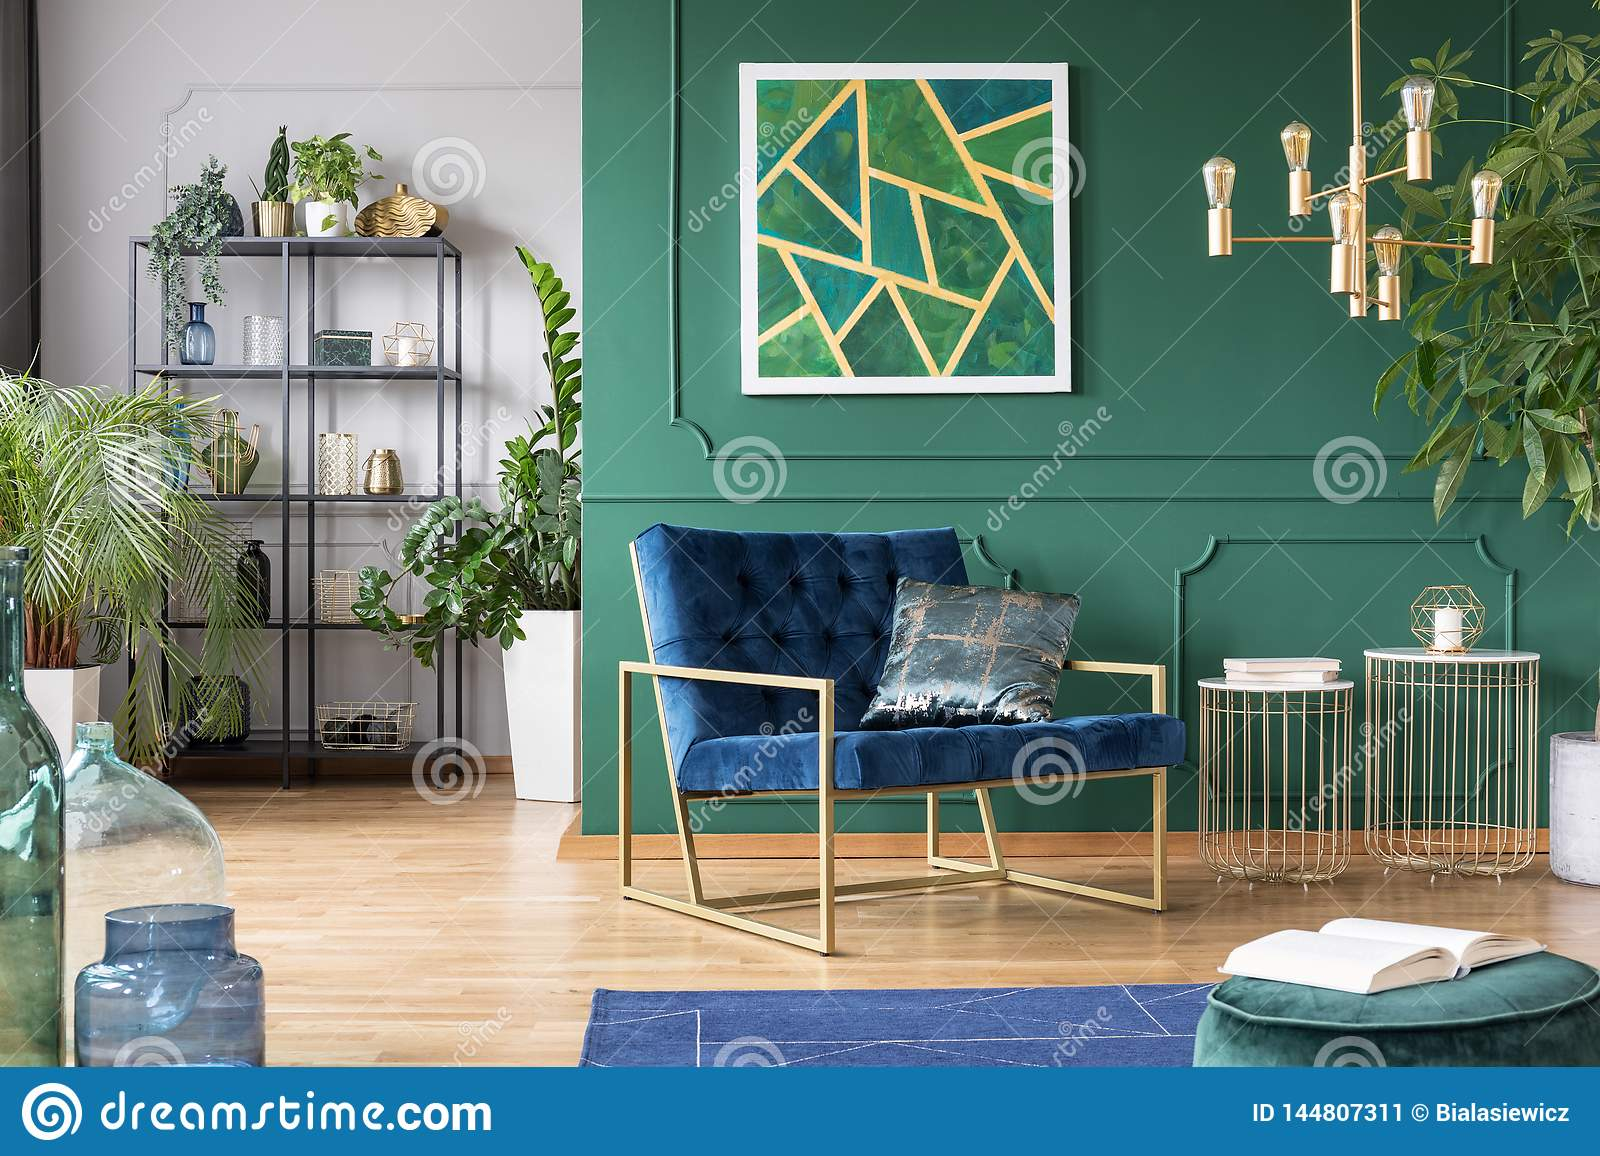 Stylish Living Room Interior Idea With Green Blue And Gold Colors Stock Image Image Of Leaf Flower 144807311